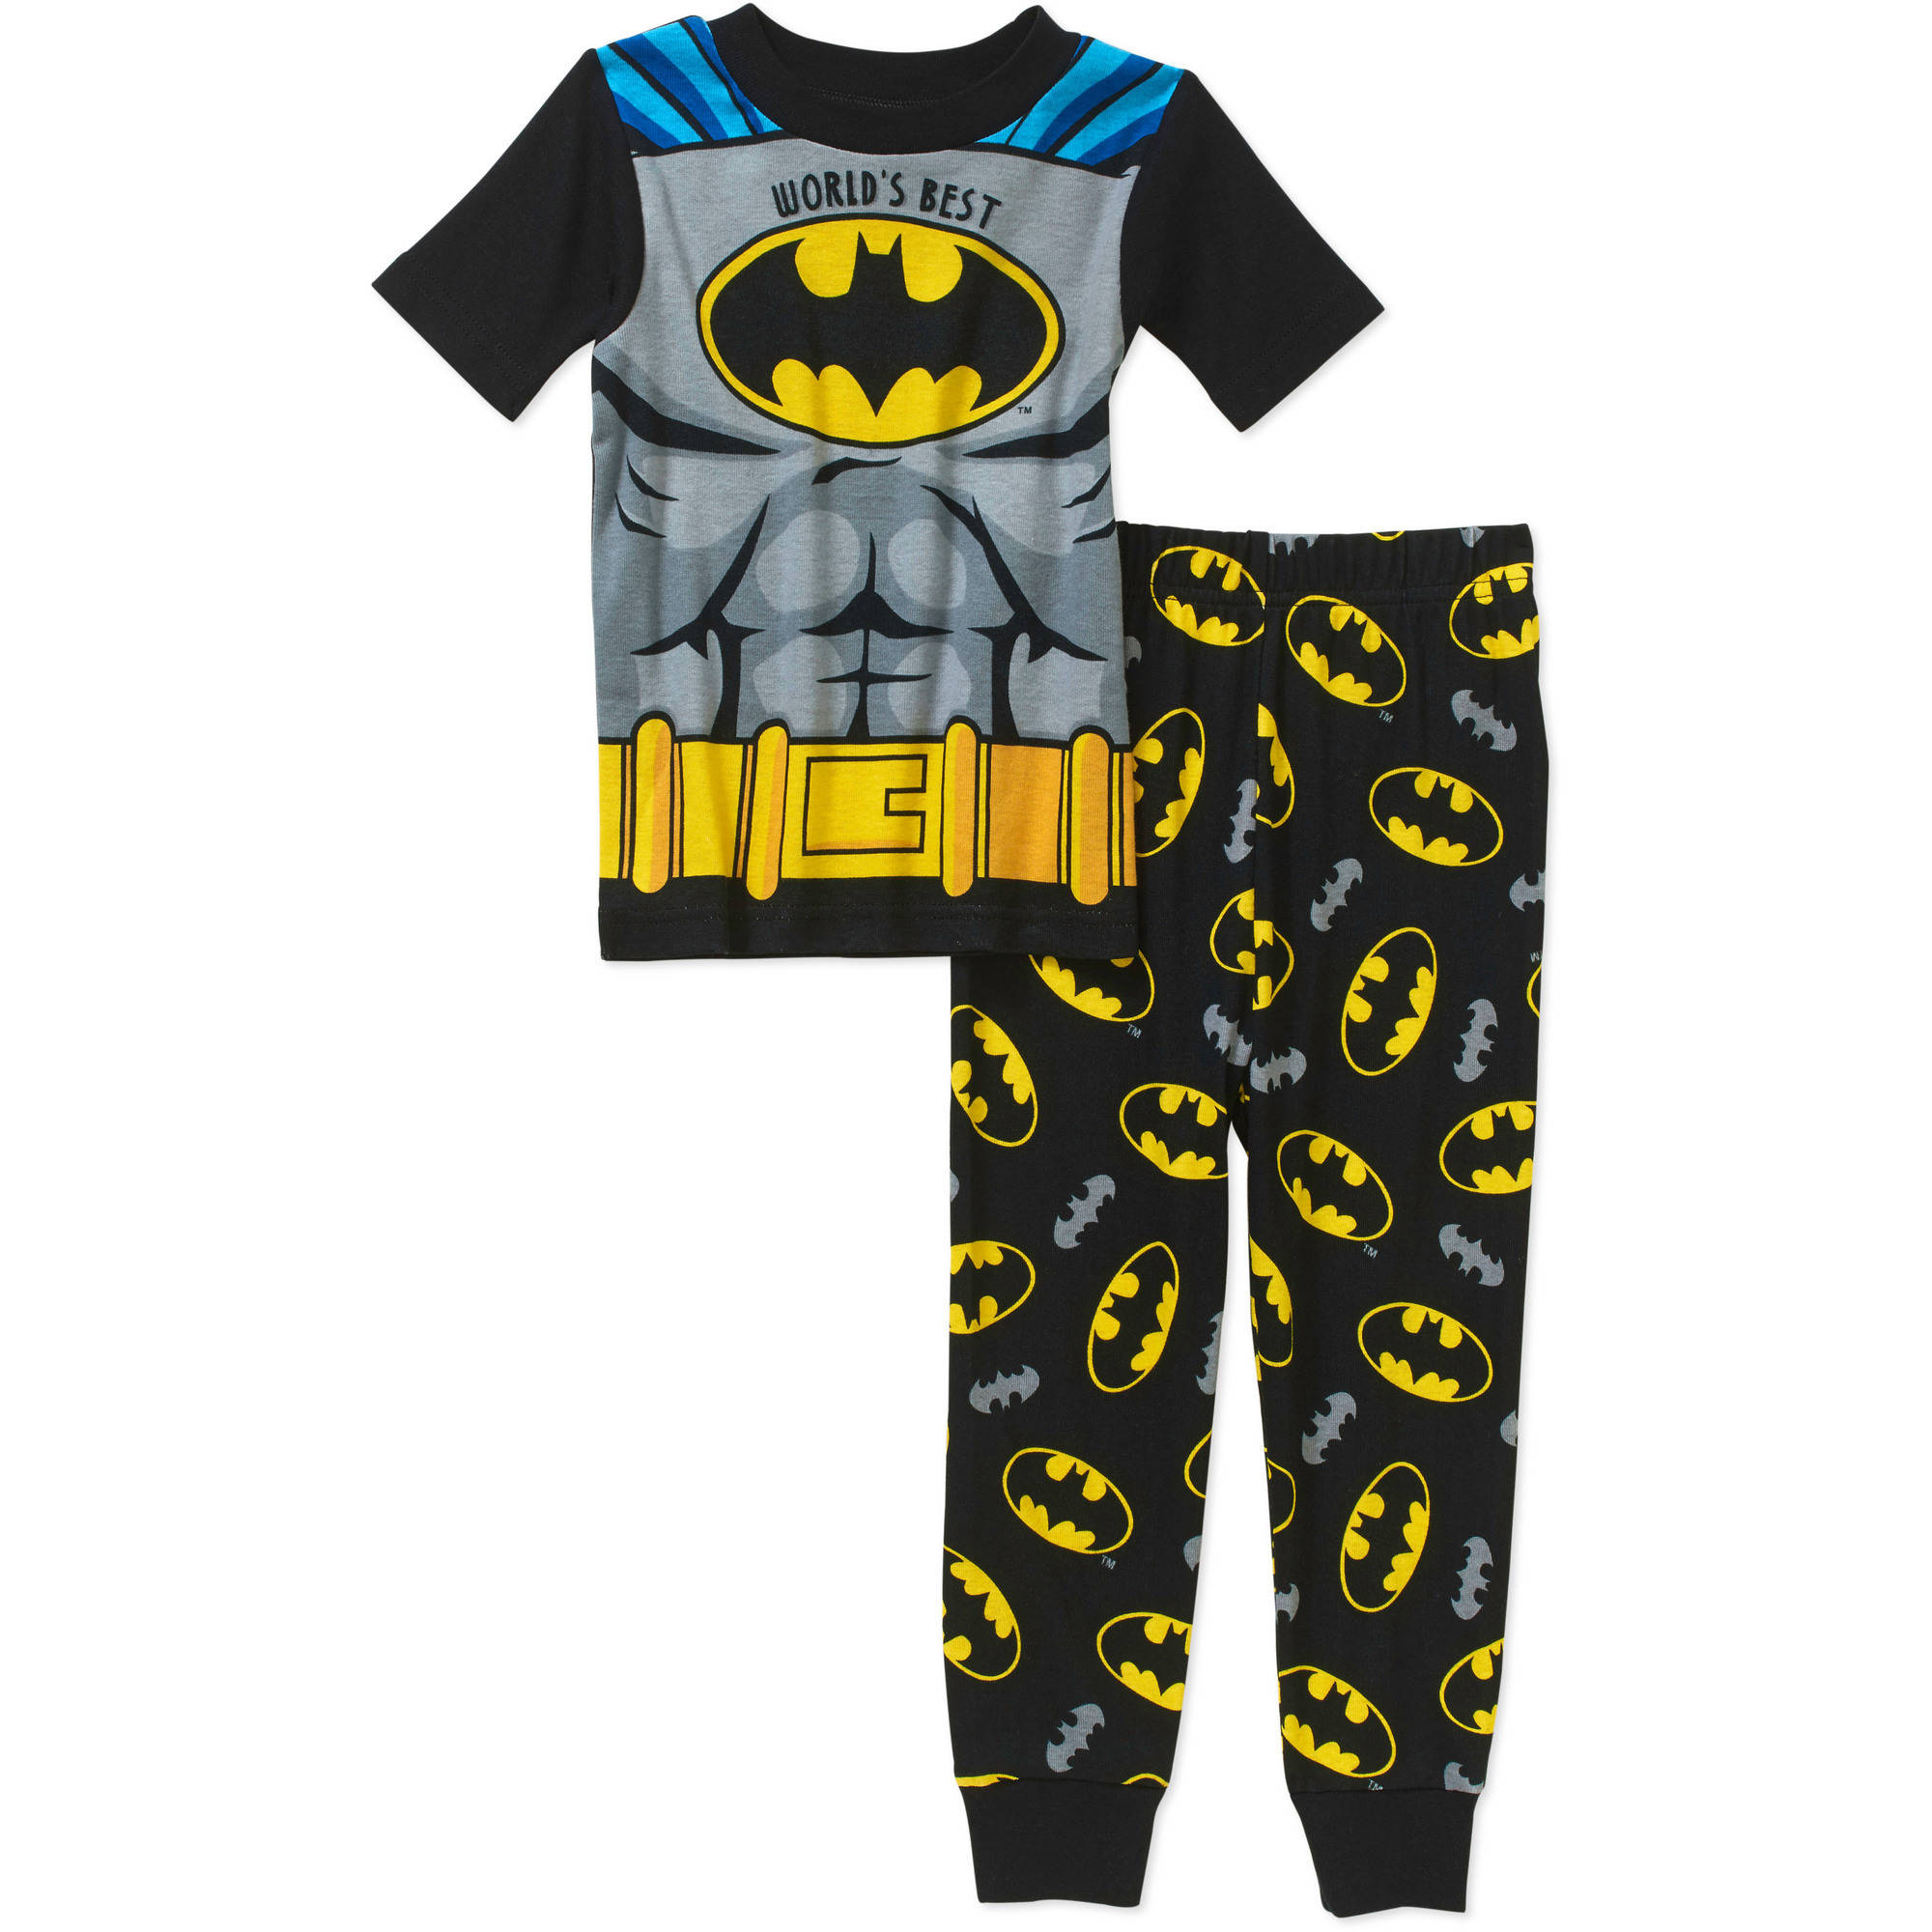 Batman Toddler Boys' Licensed Cotton Pajama Sleepwear Set